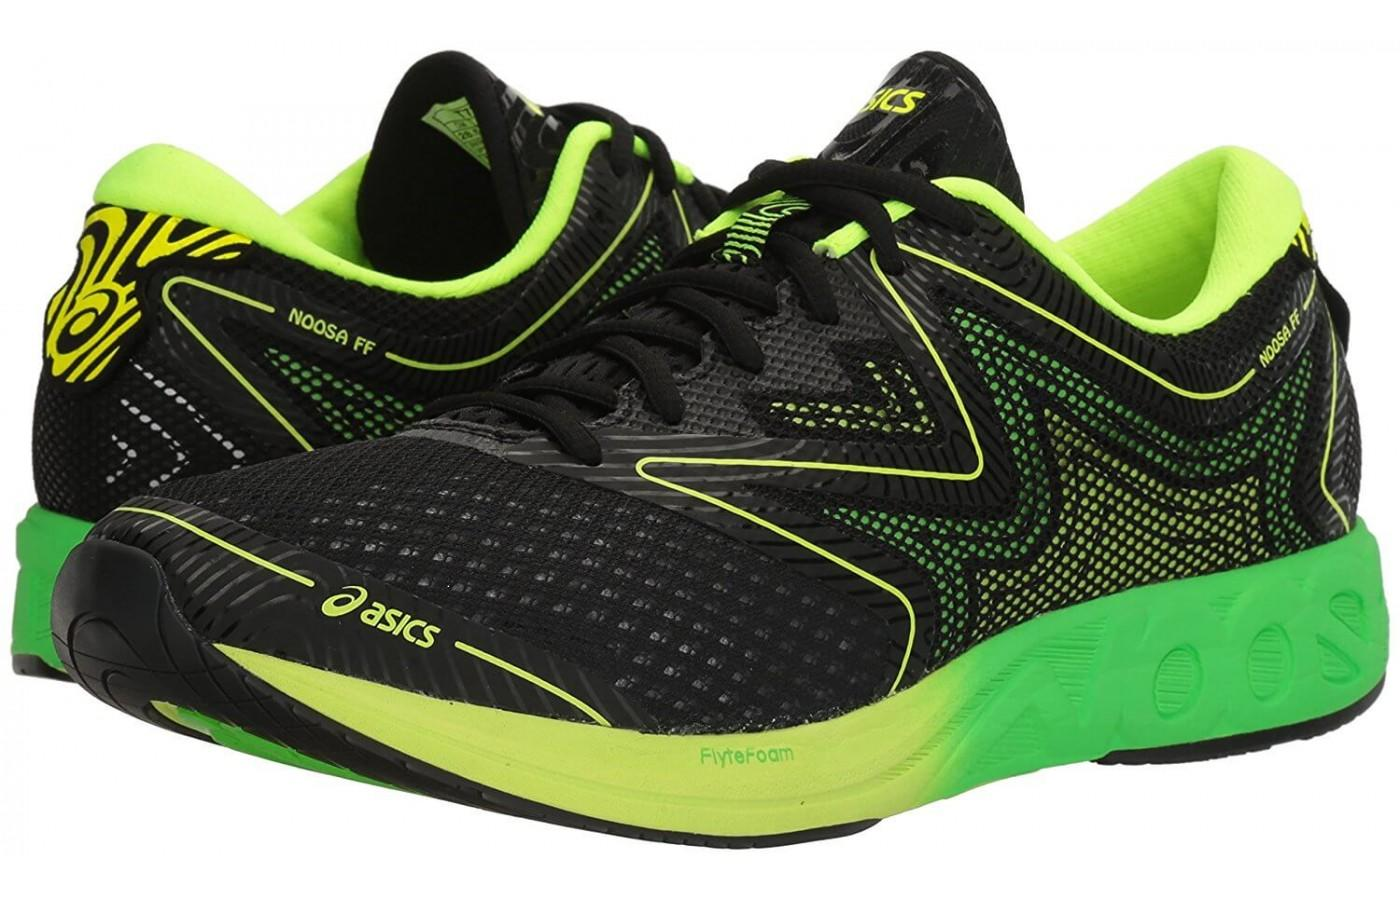 innovative design 72212 435b2 ... the Ascis Noosa FF is a versatile and comfortable running shoe that are  suitable for both